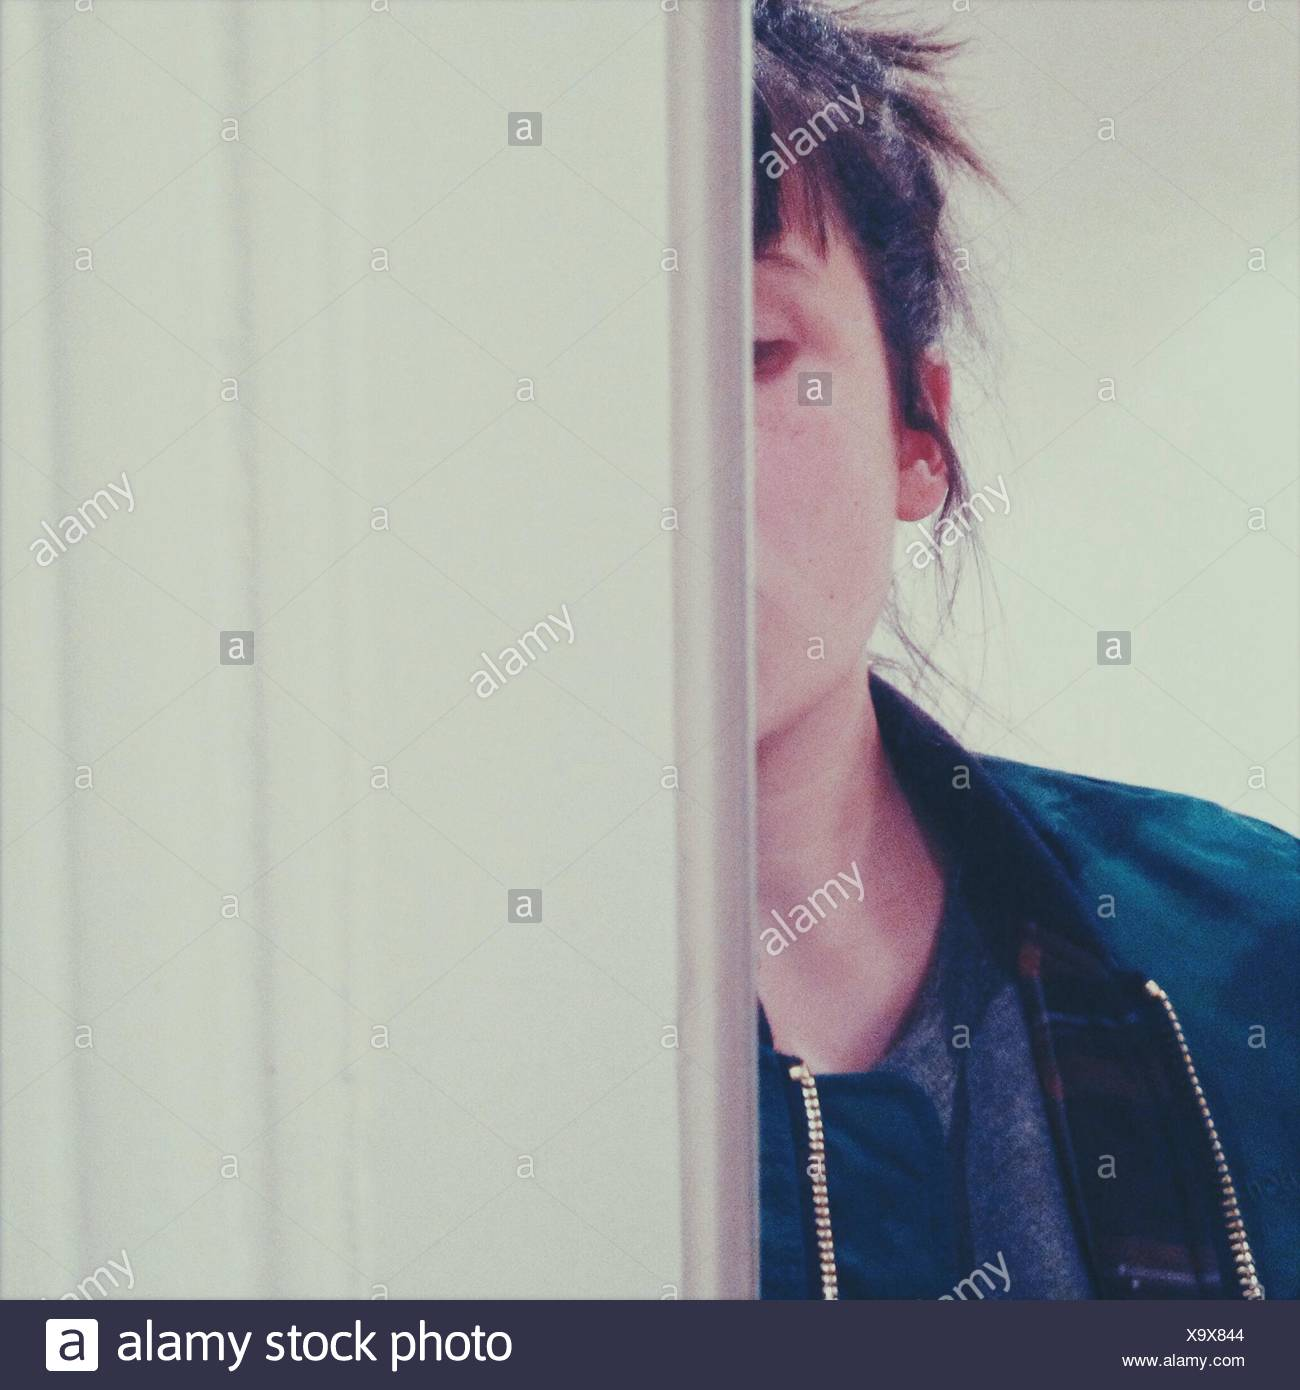 Cropped Image Of Woman Hiding Behind Wall - Stock Image